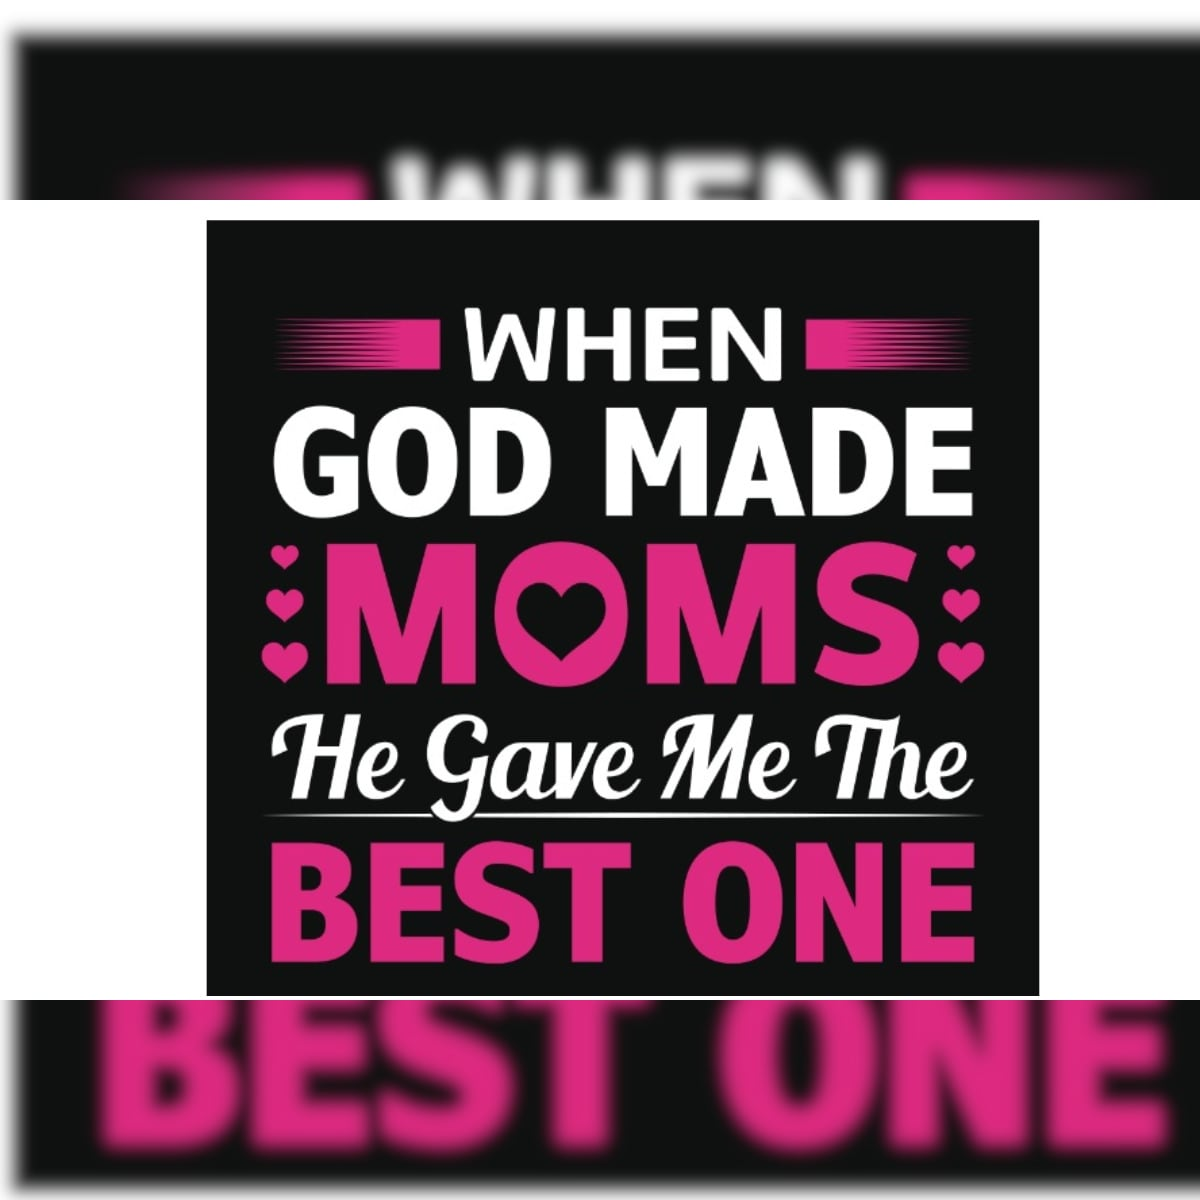 About mothers quotes strong 75 Best